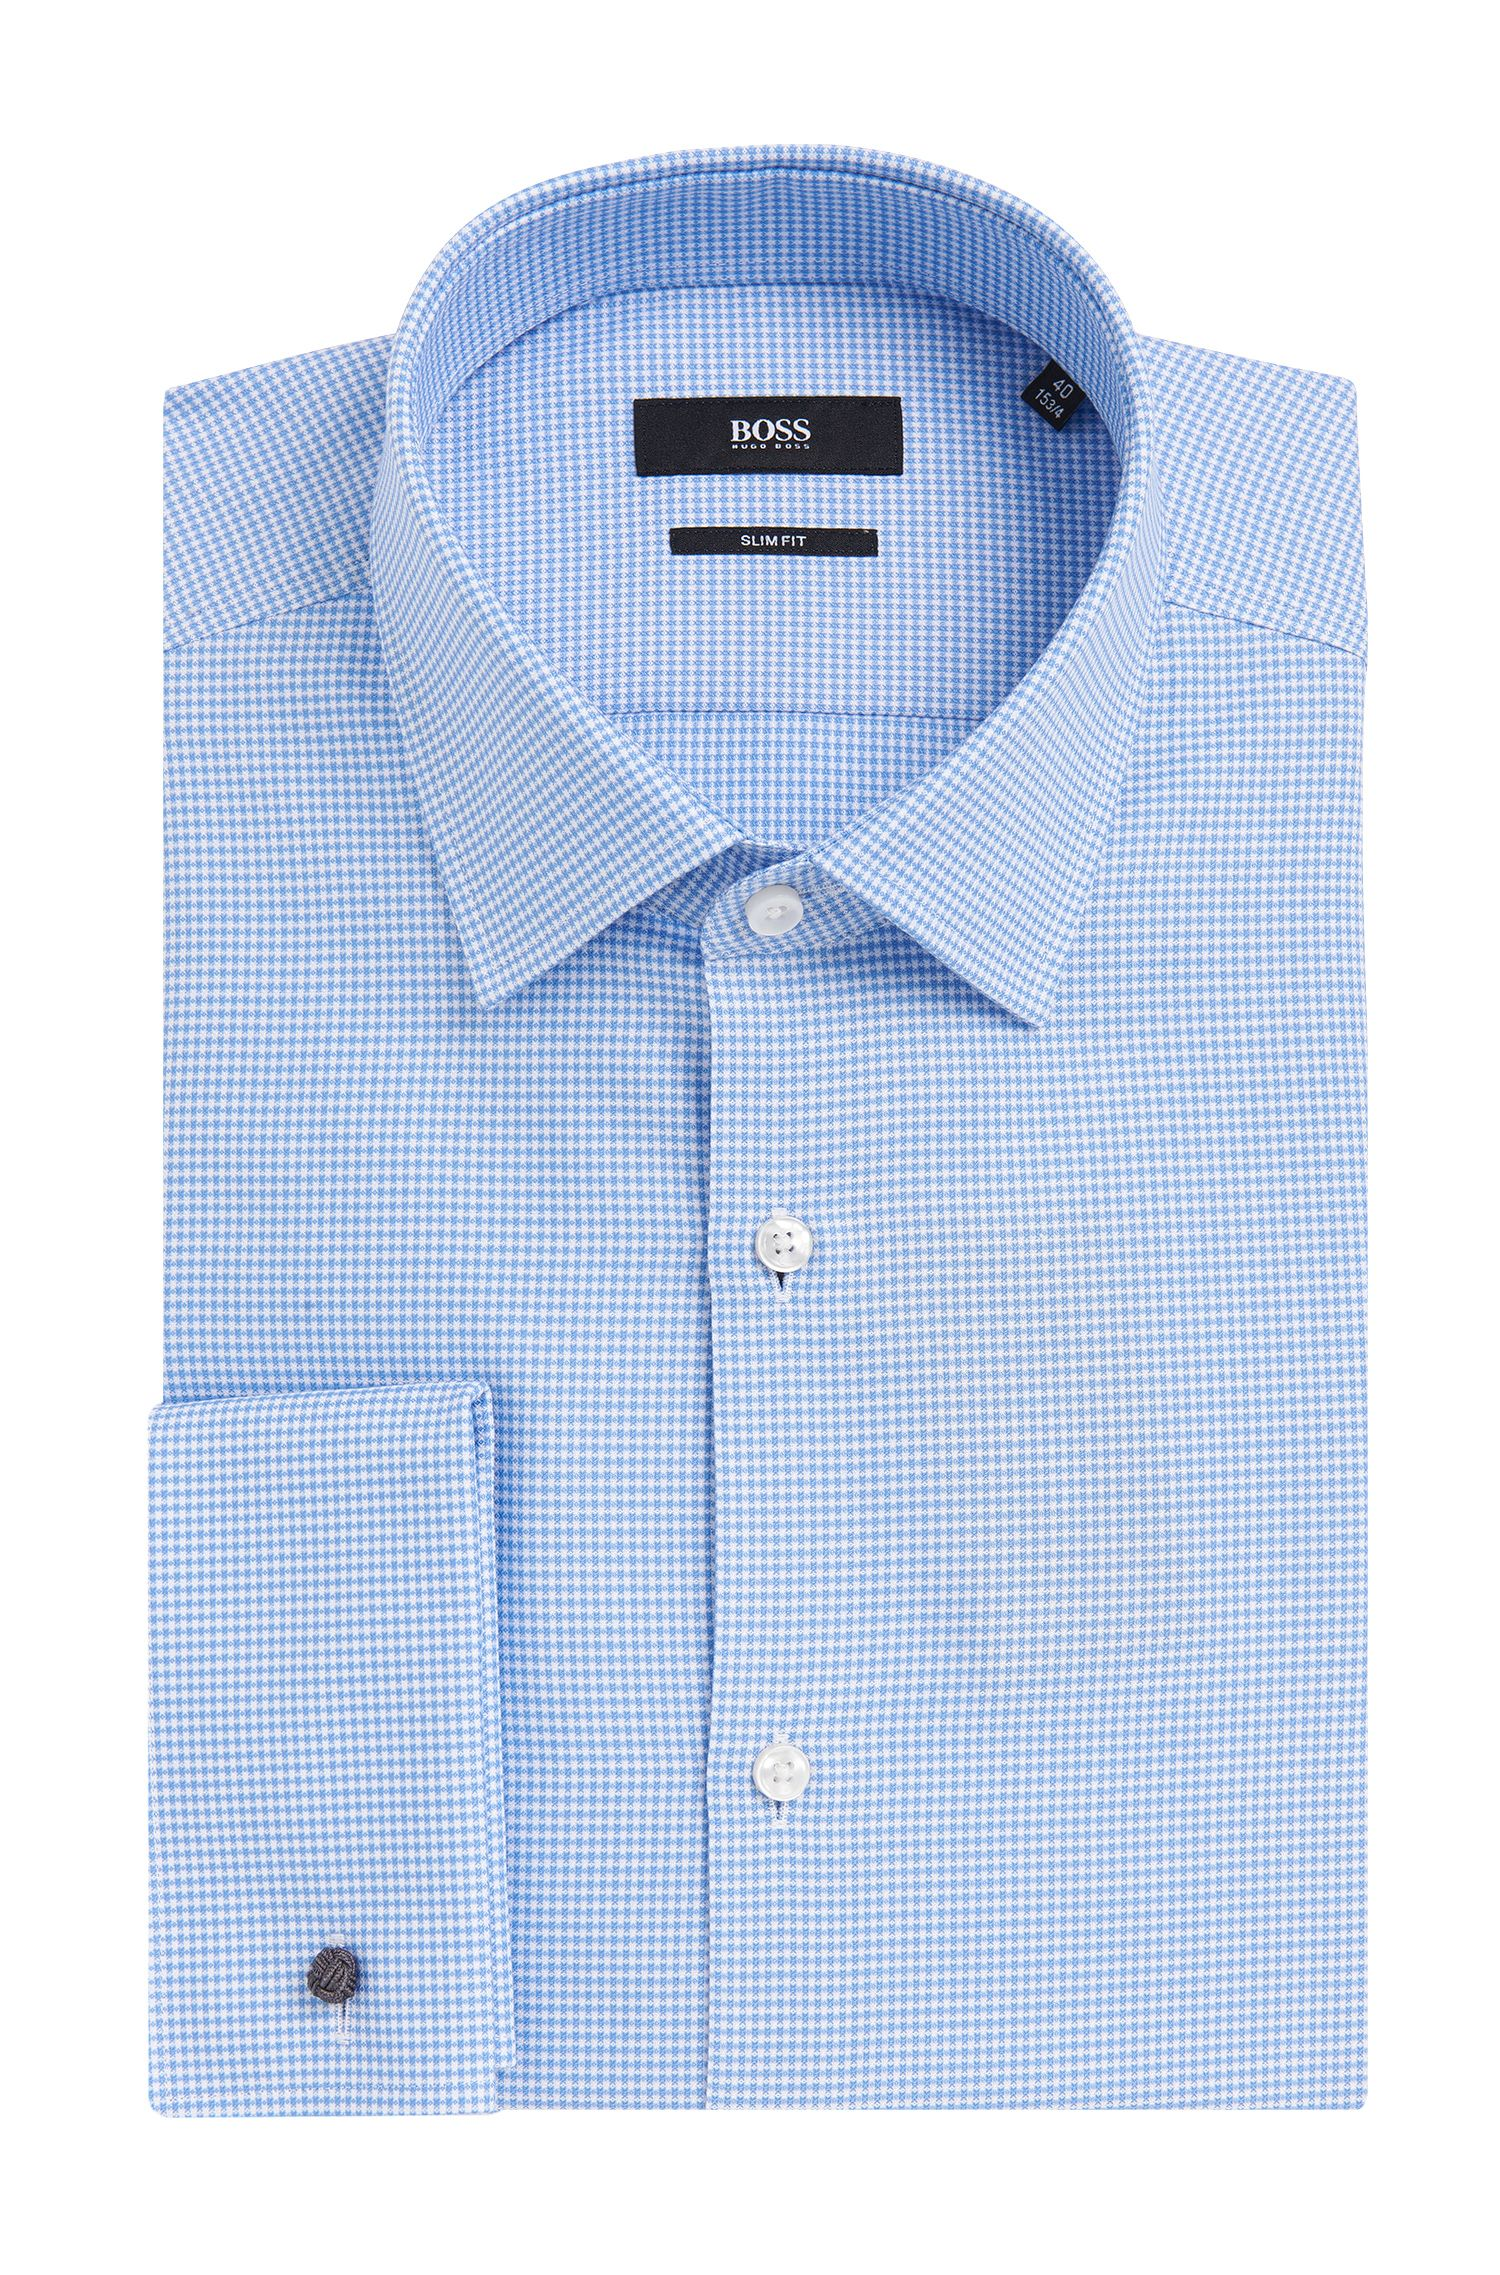 Houndstooth Italian Cotton French Cuff Dress Shirt, Slim Fit | Jacques